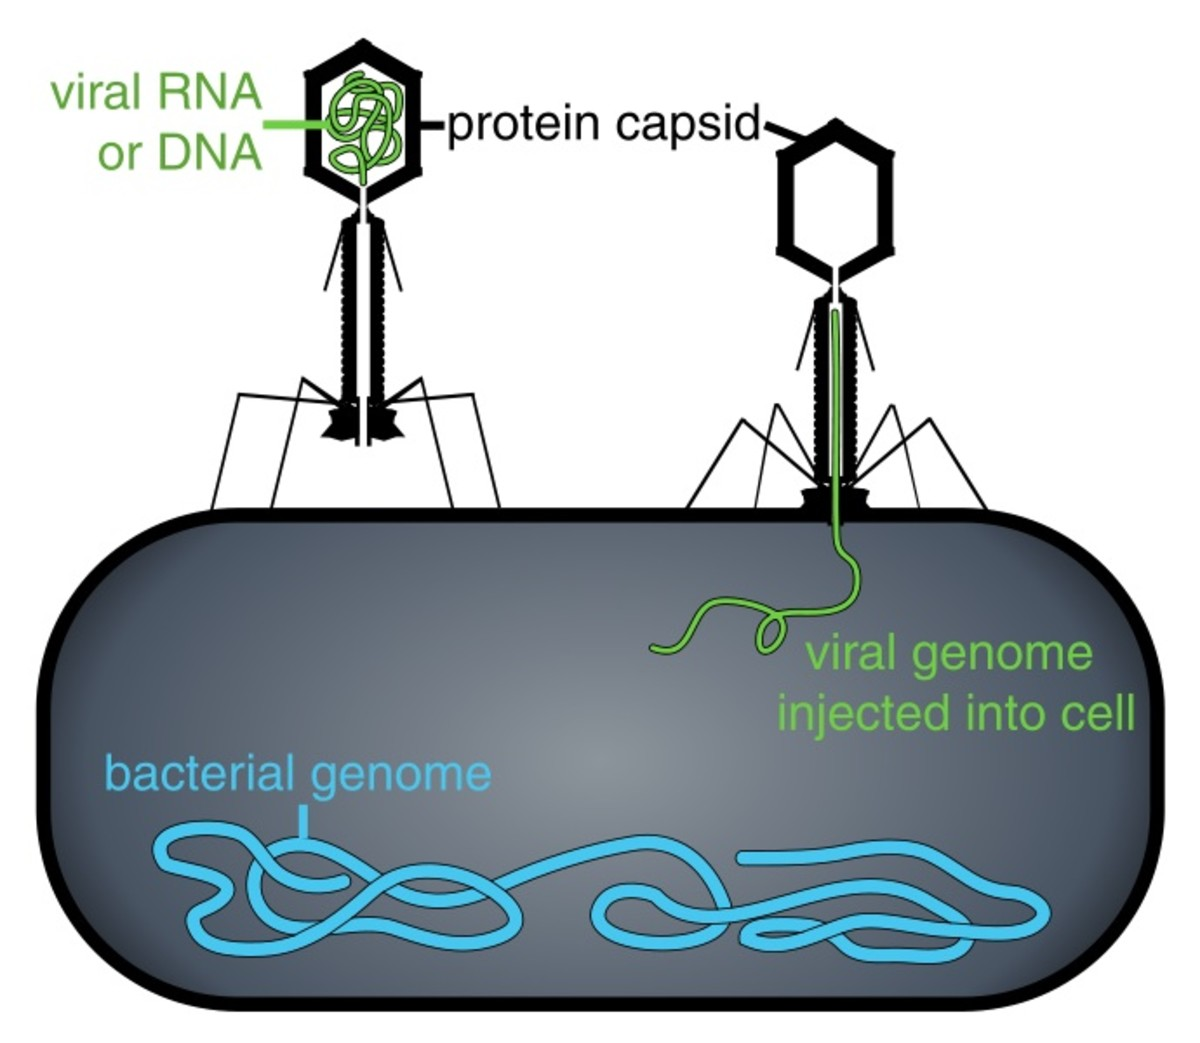 A bacteriophage or phage is a virus that infects bacteria. Here a phage is injecting its nucleic acid into a bacterium. The nucleic acid contains the genes of the virus.